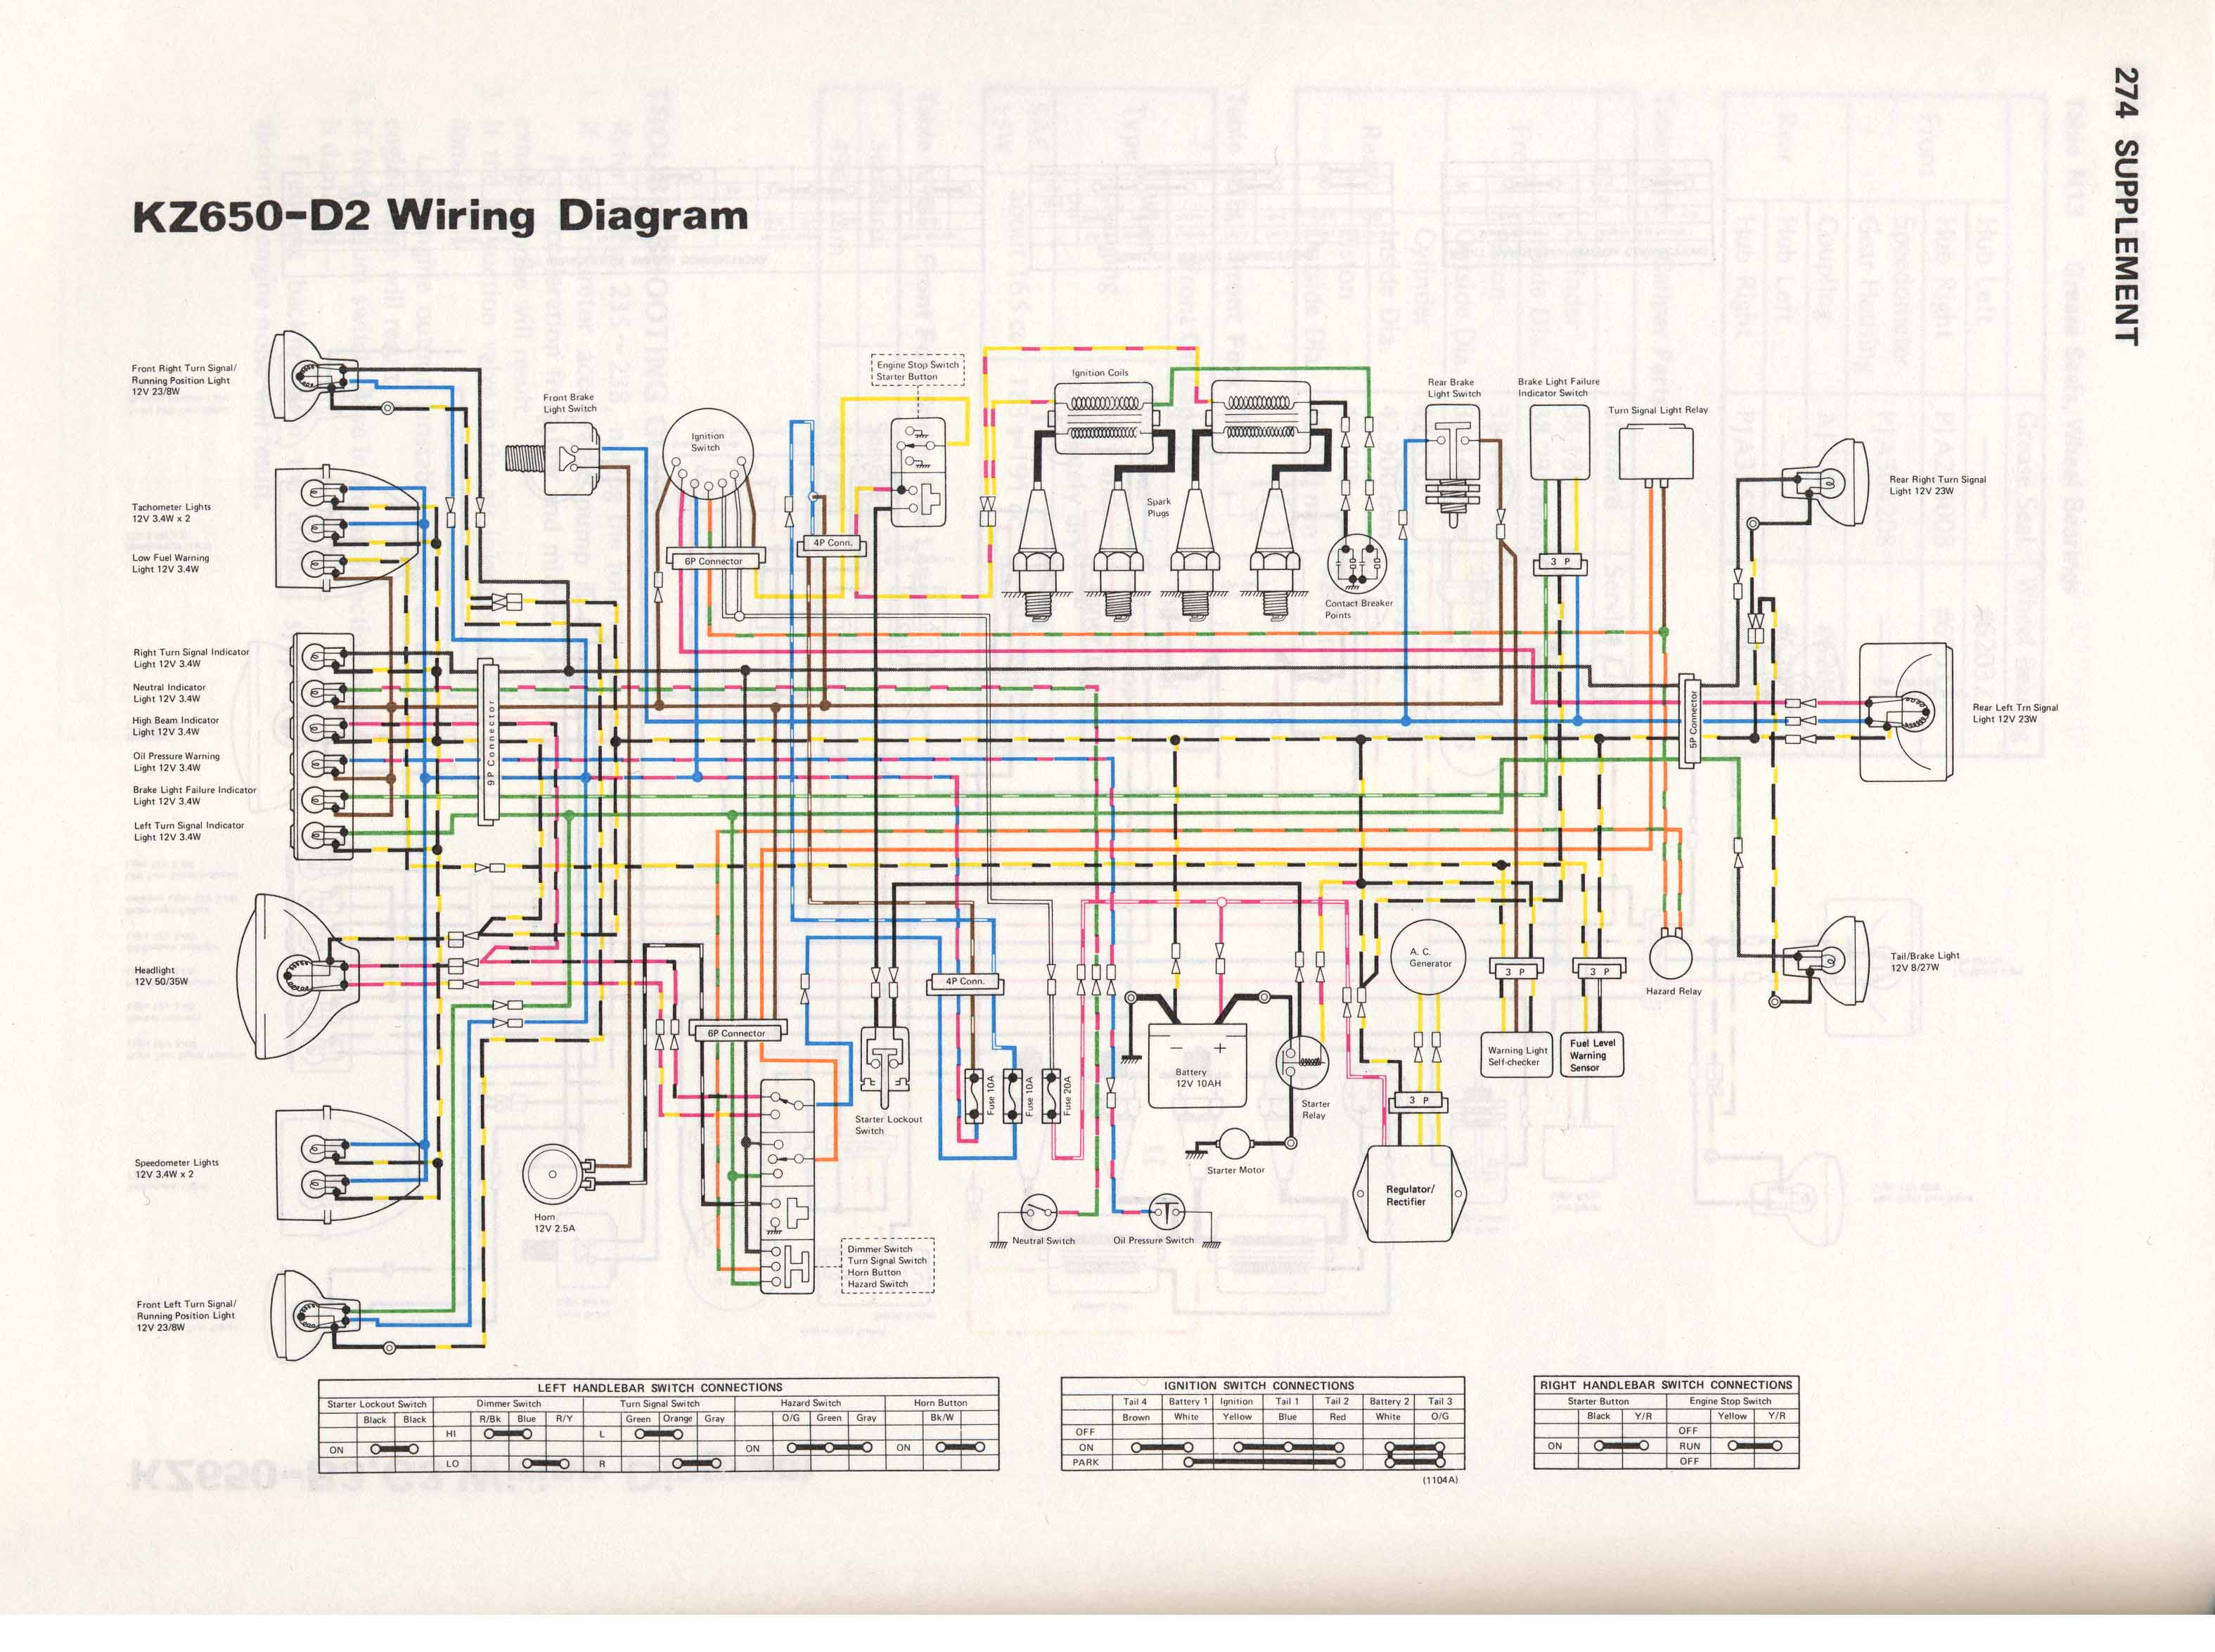 KZ650 D2 kawasaki ltd 550 wiring diagram wiring diagram simonand Ford Starter Relay Wiring Diagram at readyjetset.co